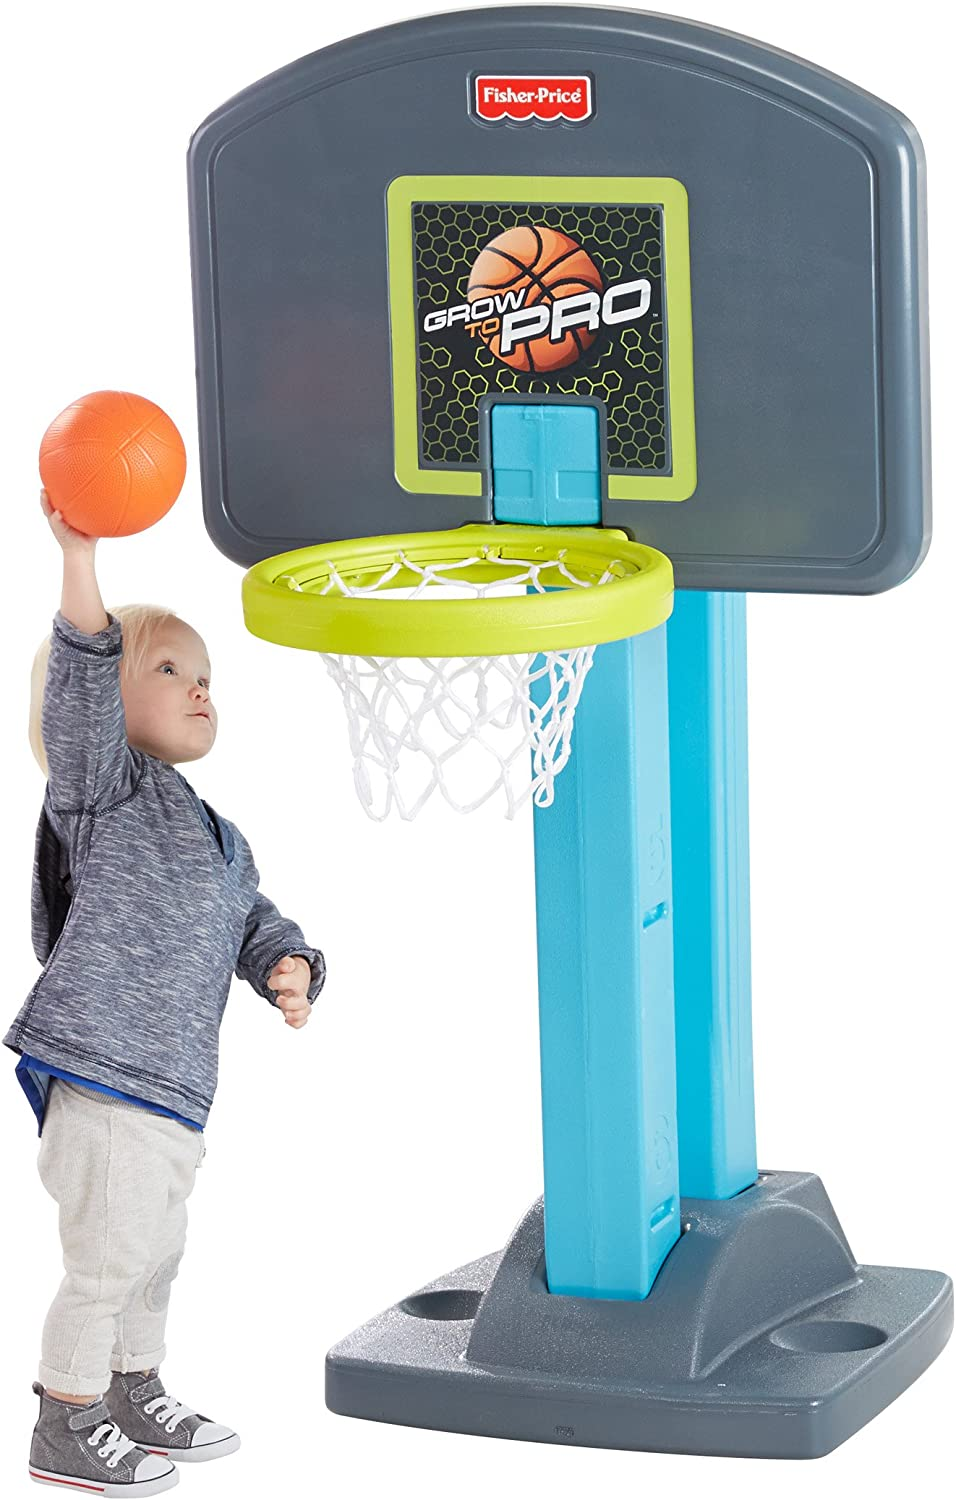 Amazon.com: Fisher-Price Grow-to-Pro Basketball: Toys & Games